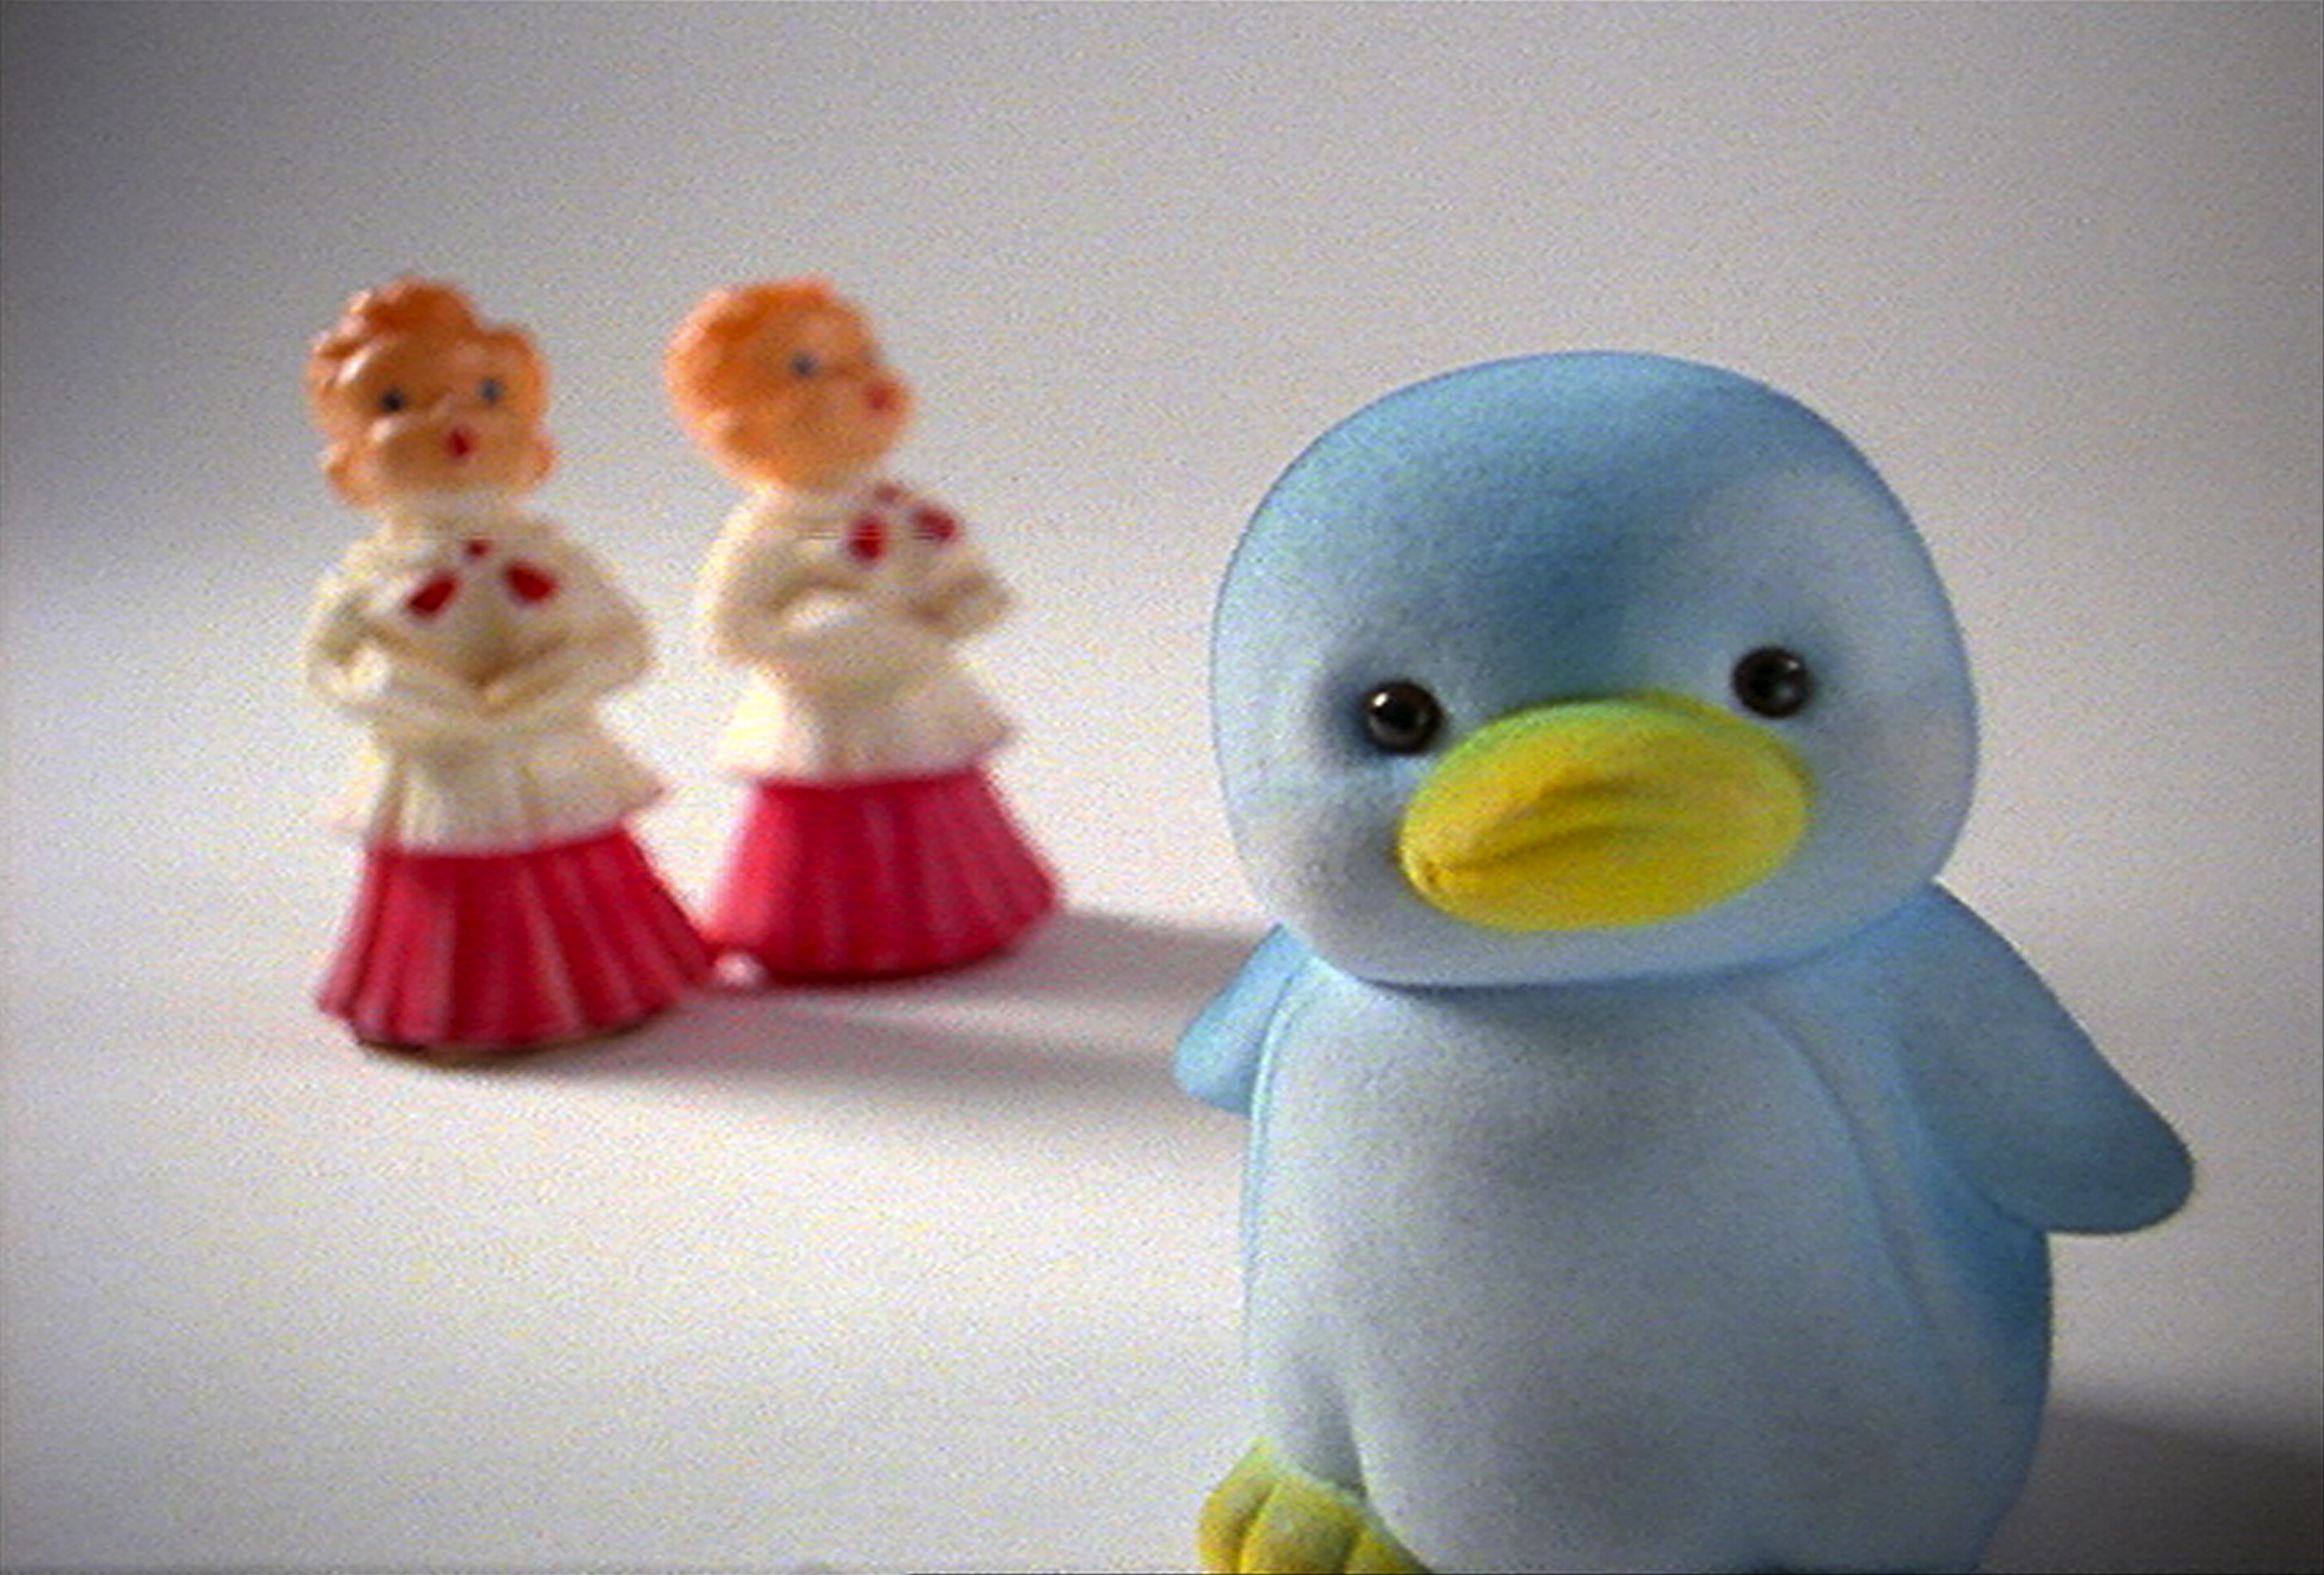 film still featuring a vintage rubber pengiun toy in the foreground and two vintage caroling figures in the background